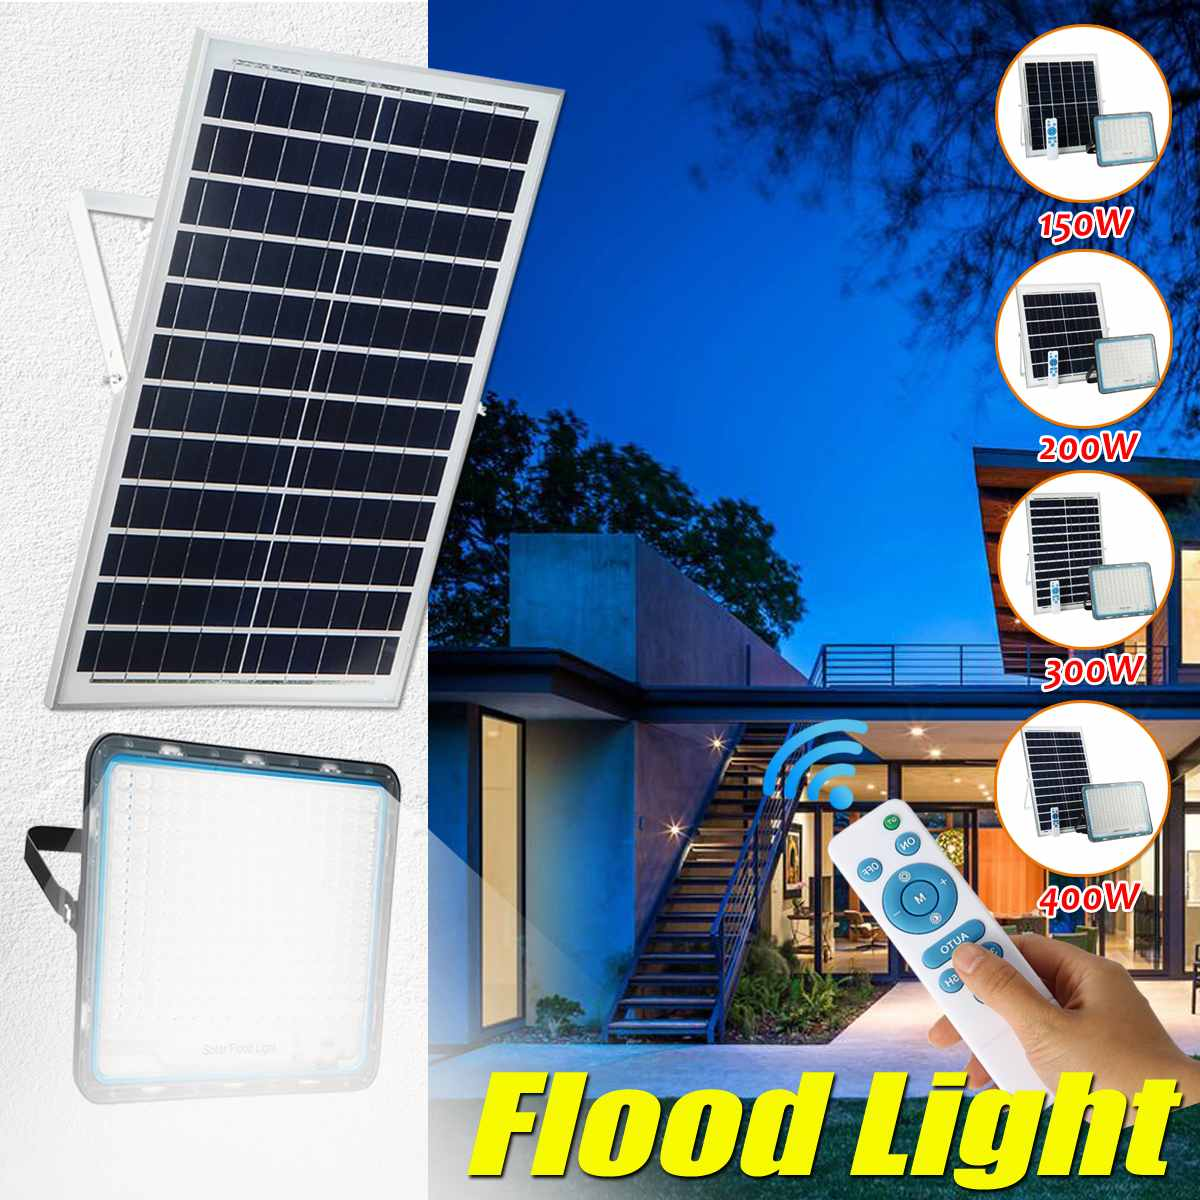 Multi-function Solar Flood Light Outdoor Waterproof Wall Lamp Led Solar Lamps Garden Lighting 150/200/300/400W W/ Solar Panel RC